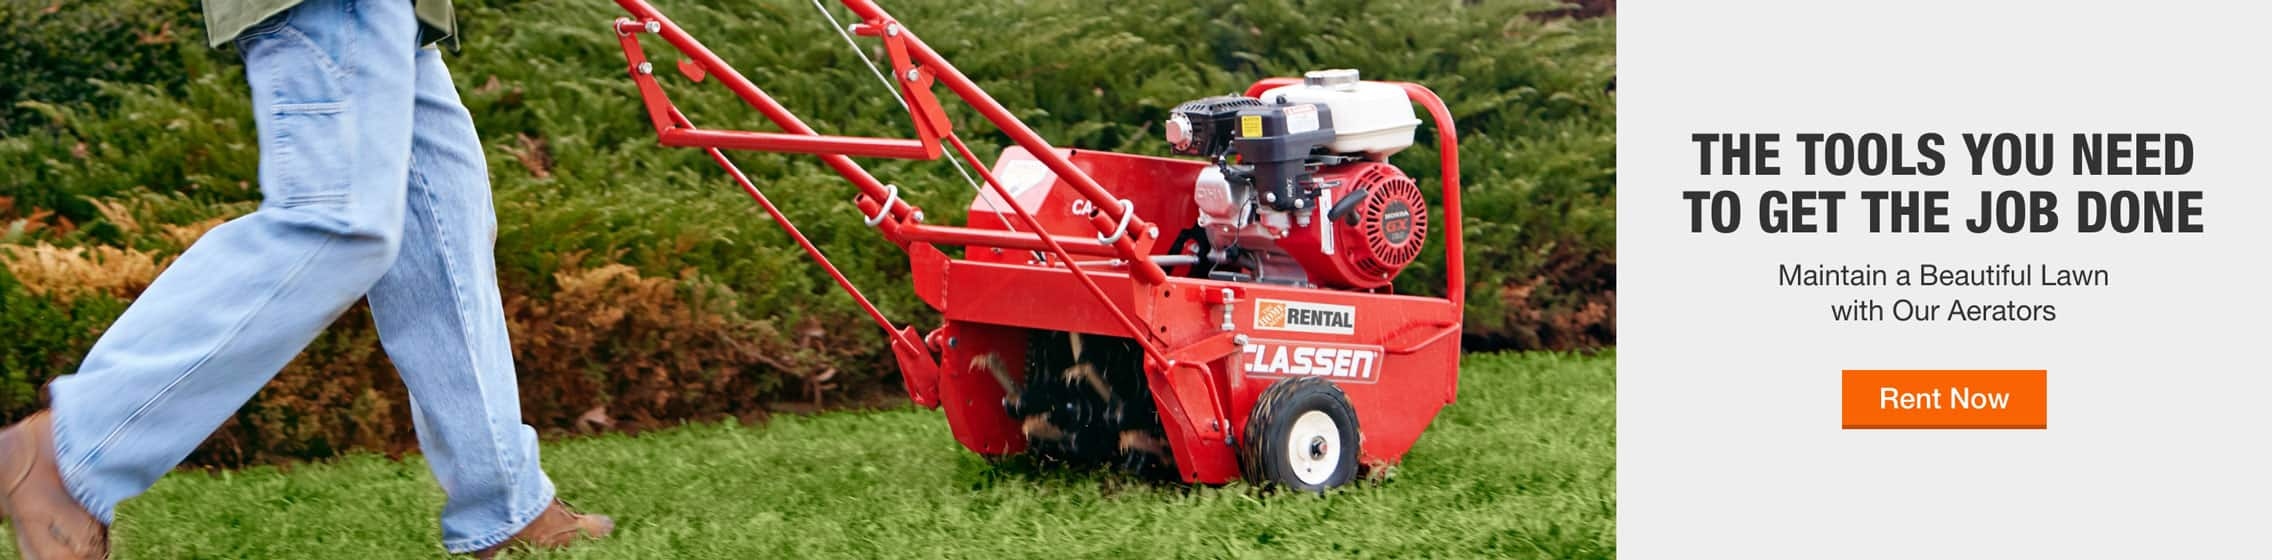 THE TOOLS YOU NEED TO GET THE JOB DONE - Maintain a Beautiful Lawn with Our Aerators - Rent Now